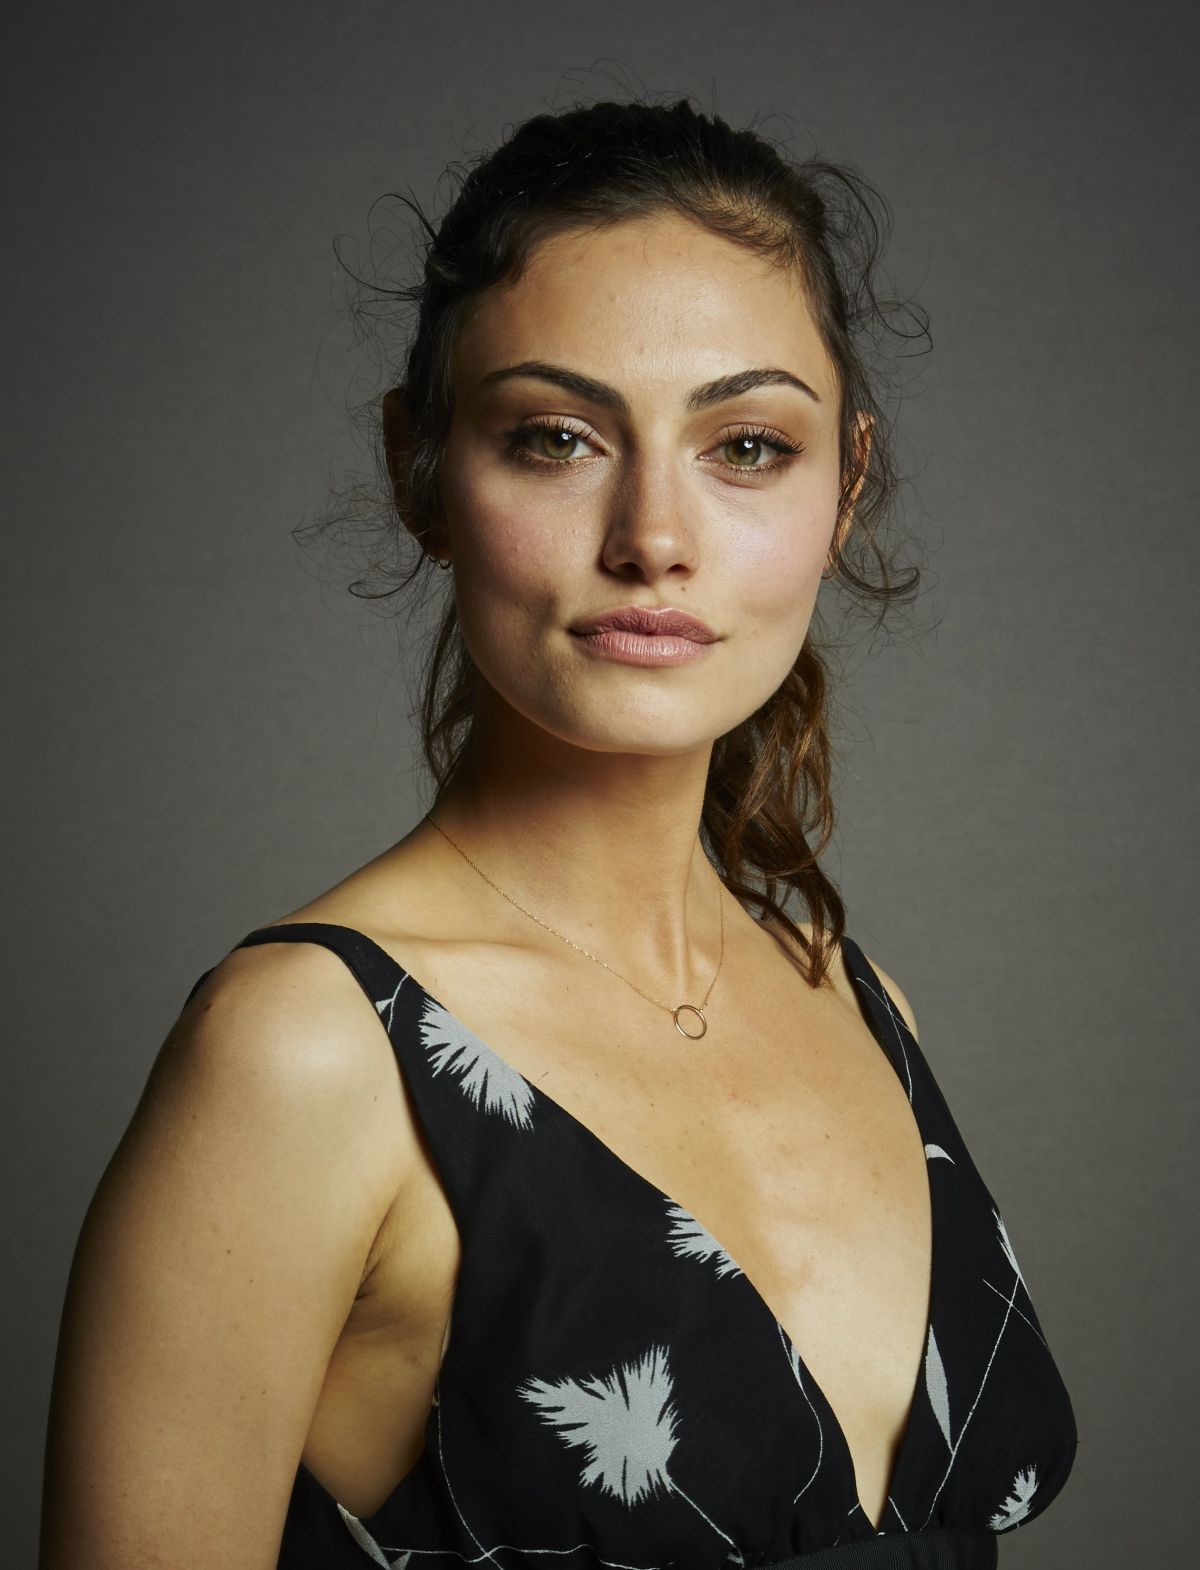 Pictures Phoebe Tonkin nude photos 2019